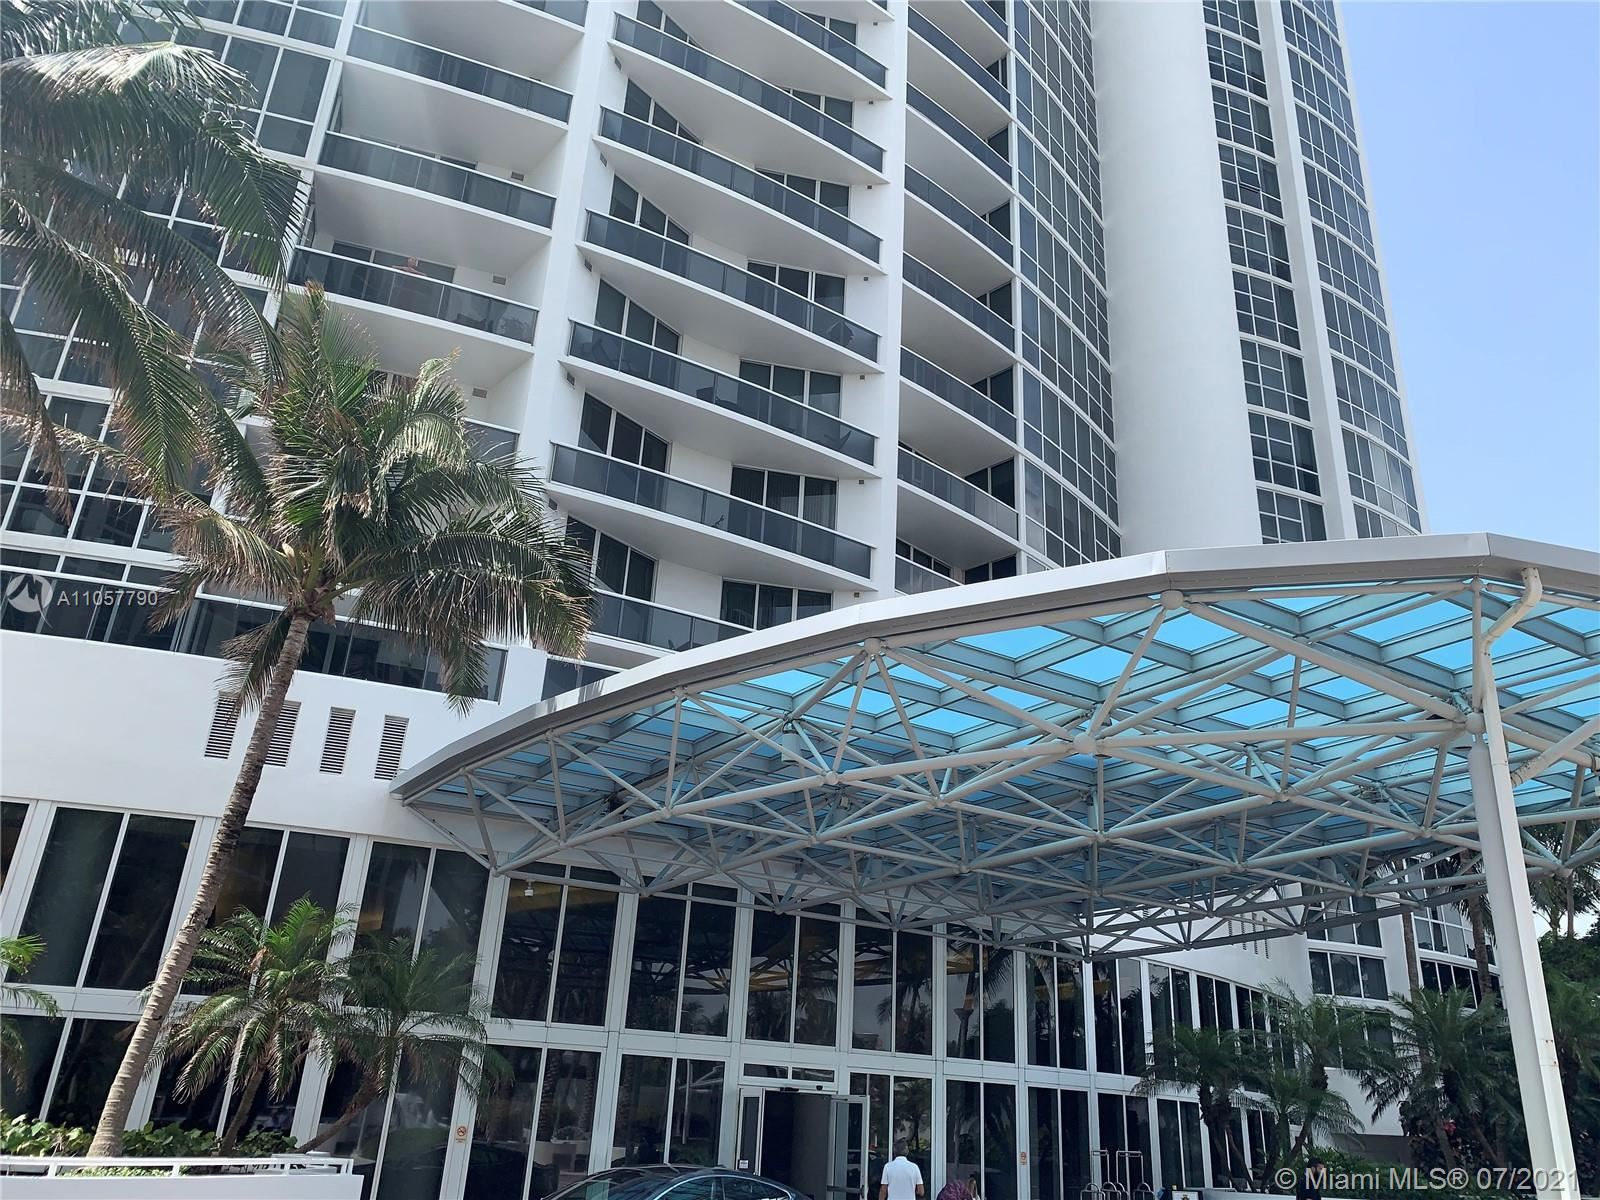 18101 Collins Ave #606, Sunny Isles, FL 33160 - #: A11057790